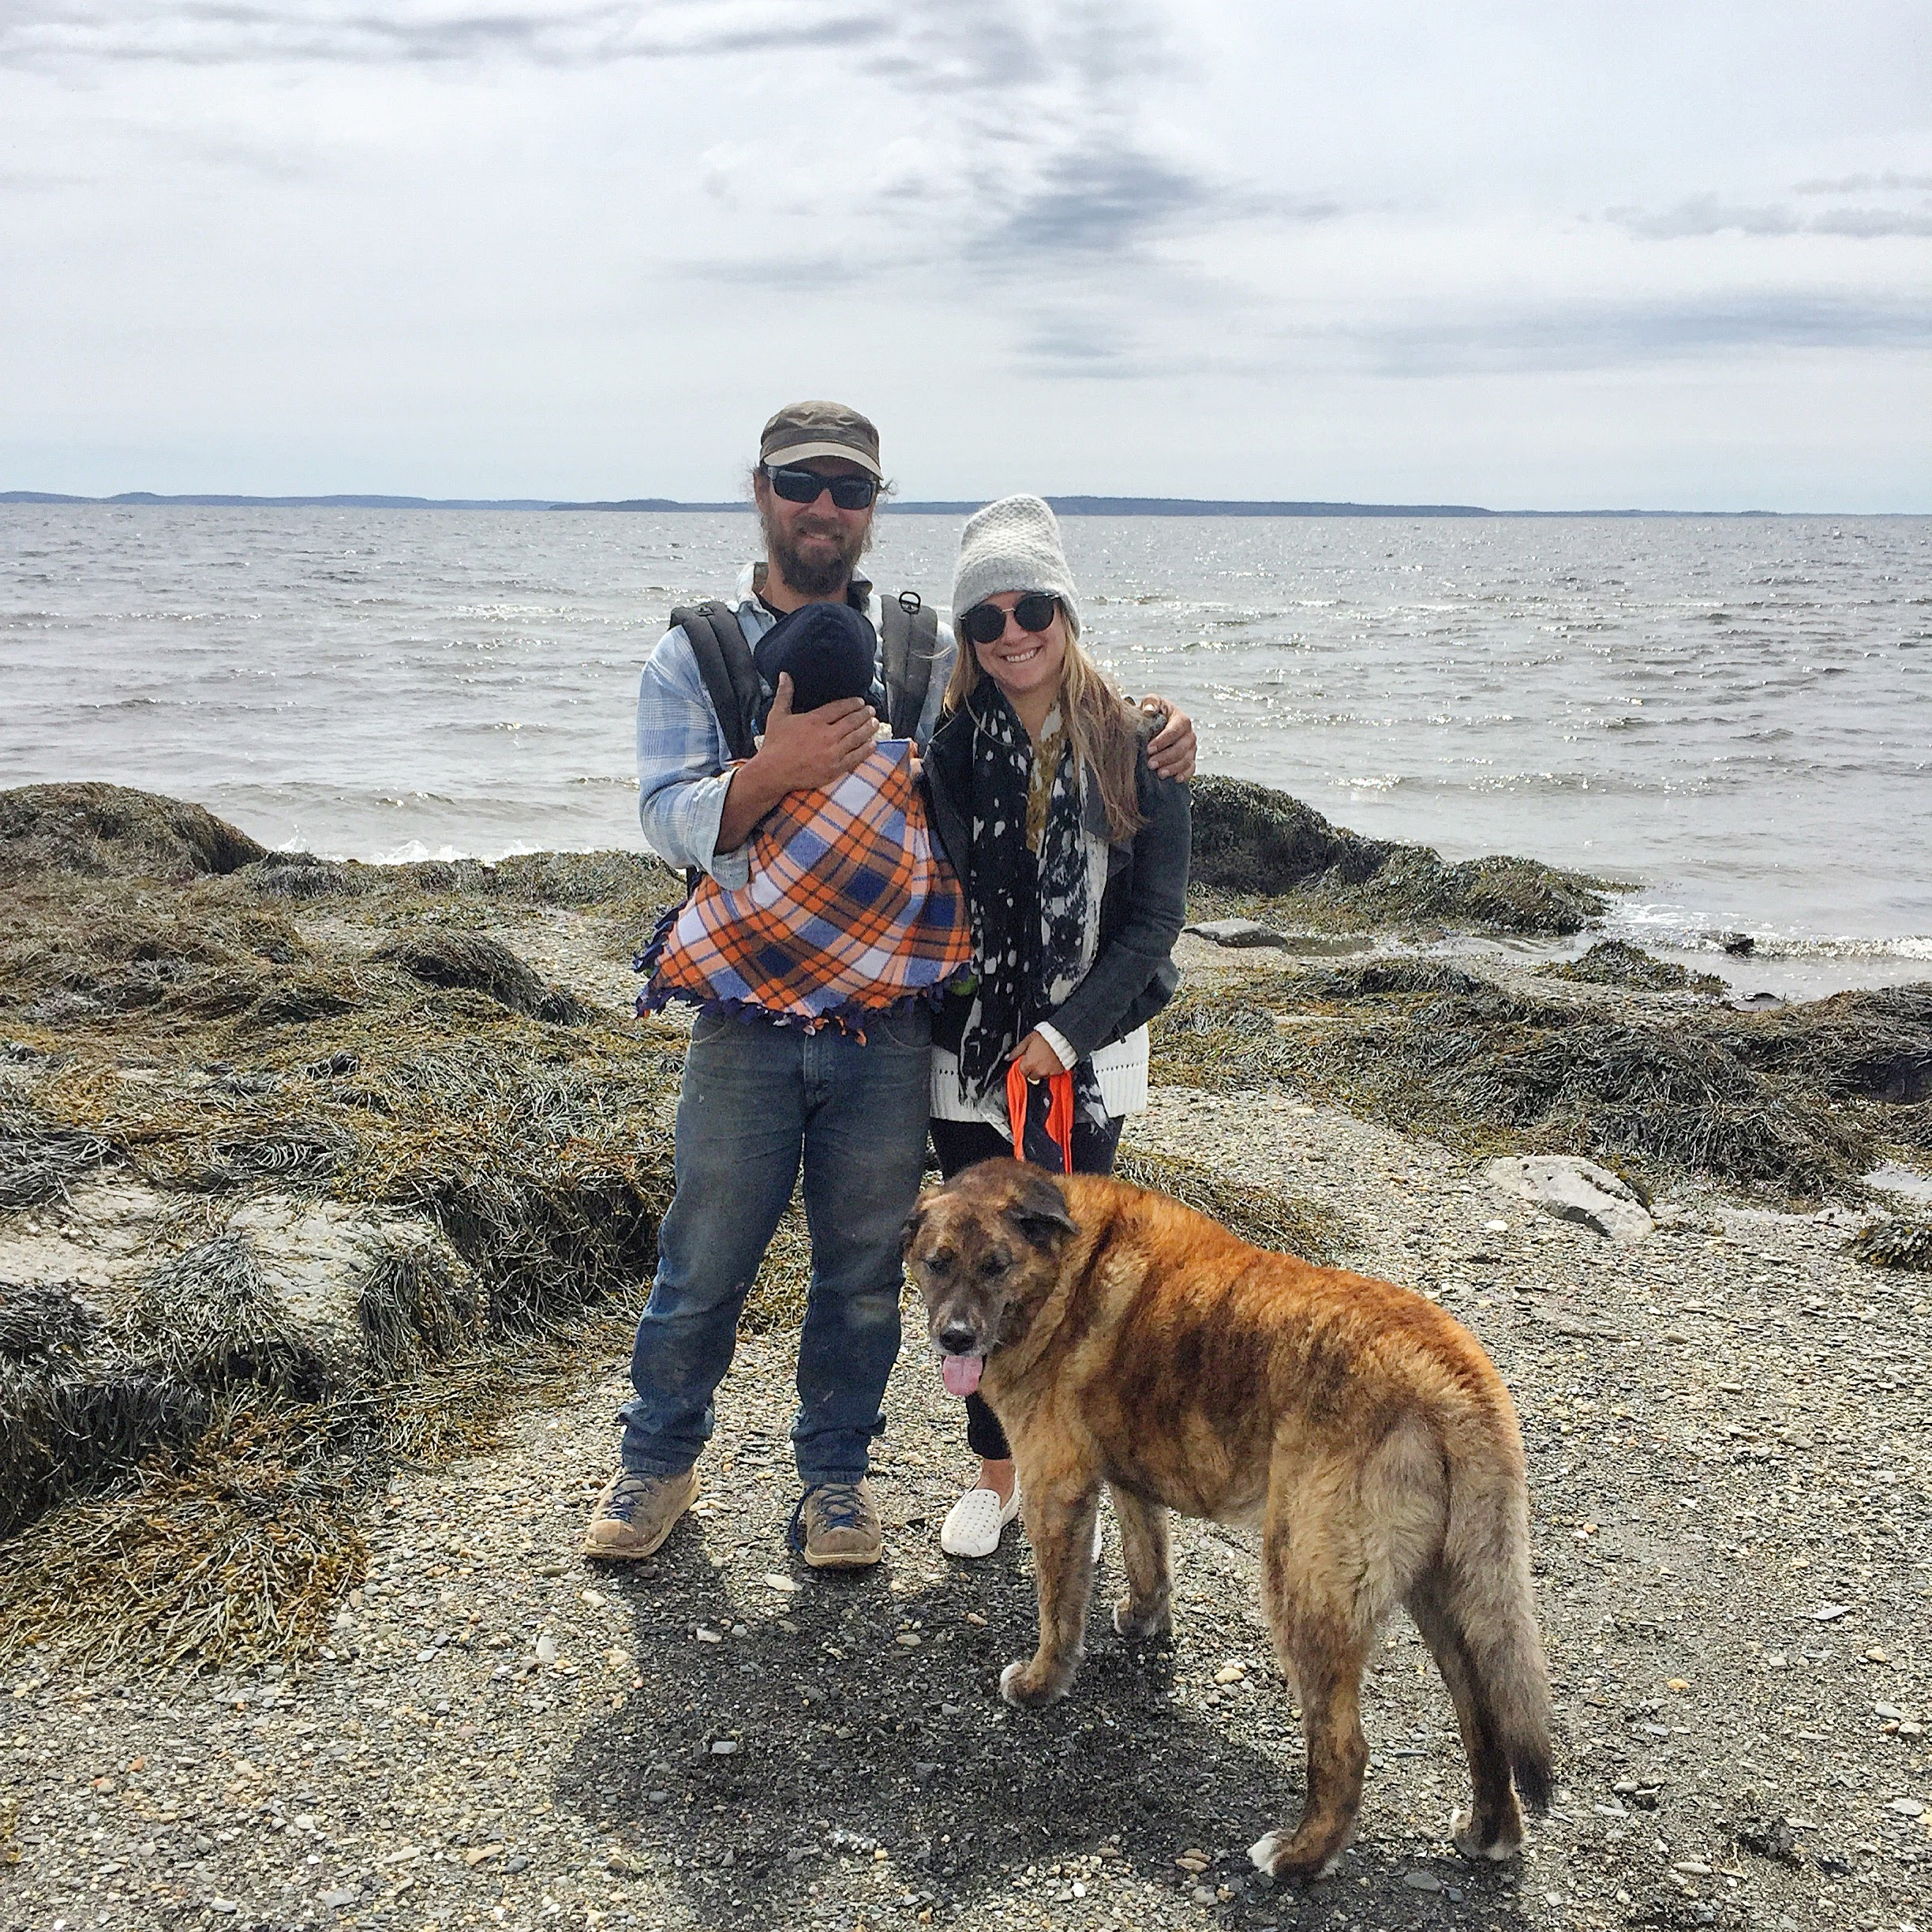 Getting outdoorsy with her brother, nephew, and their dog.